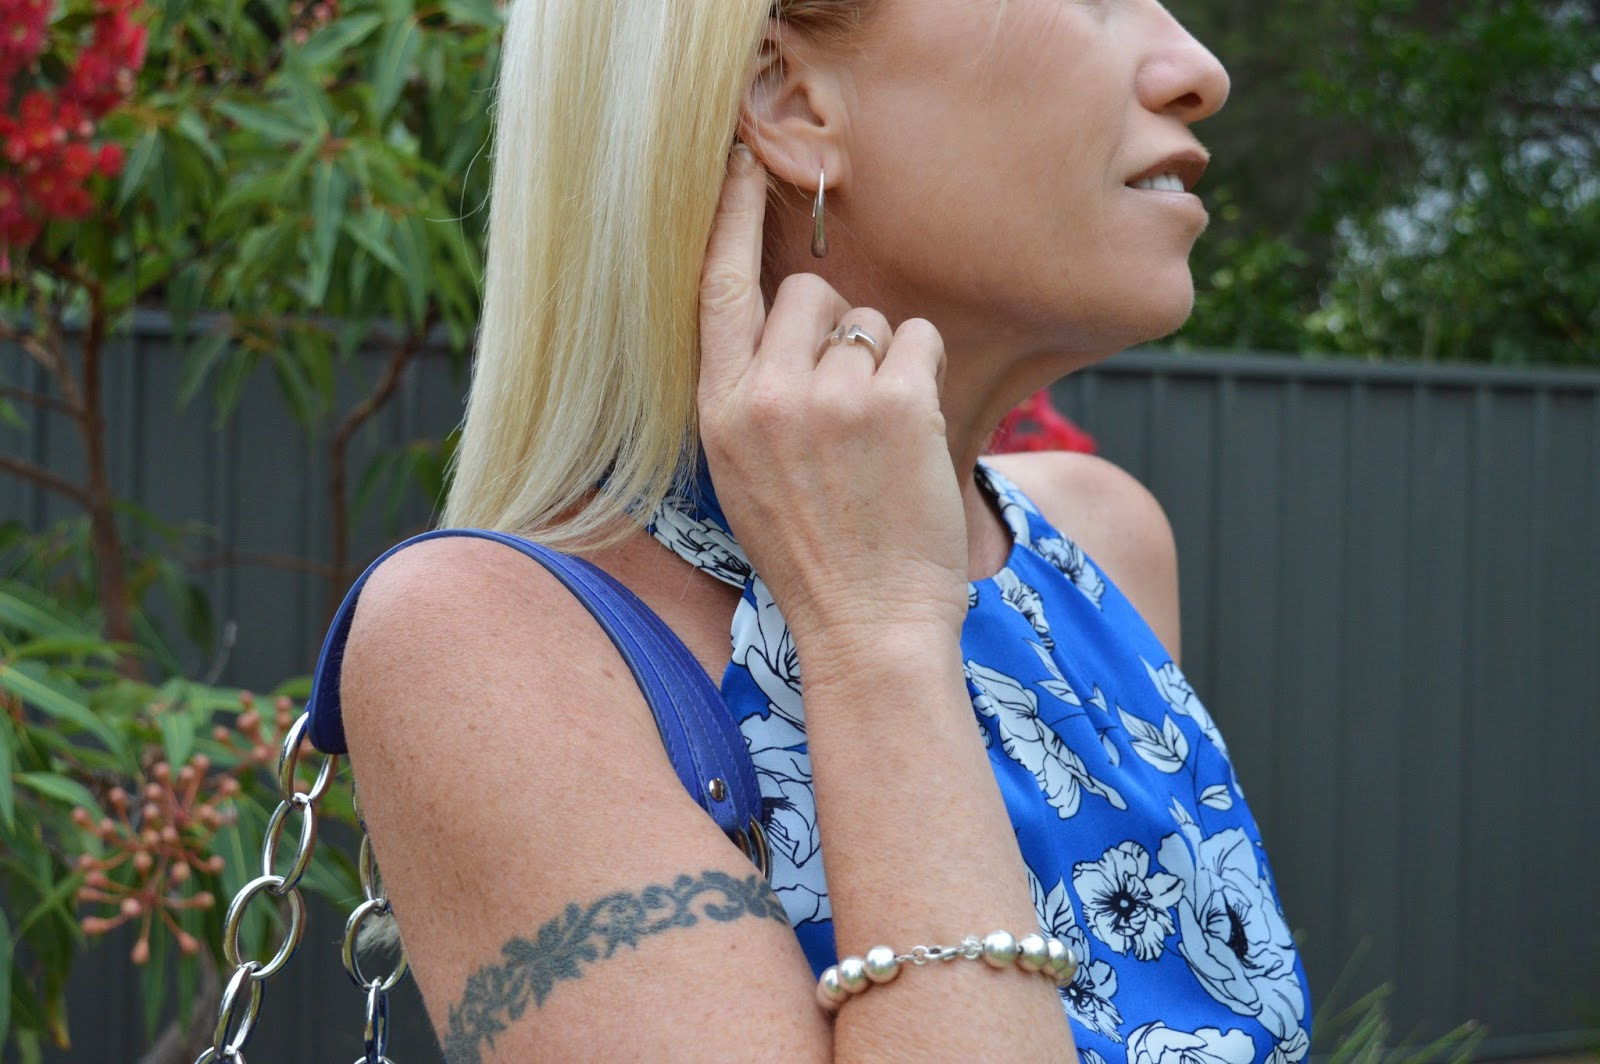 Sydney Fashion Hunter - White Pants, Blue Floral Top, Blue Dior Tote, Tiffany Earrings, Tiffany Bracelet, Tiffany Ring